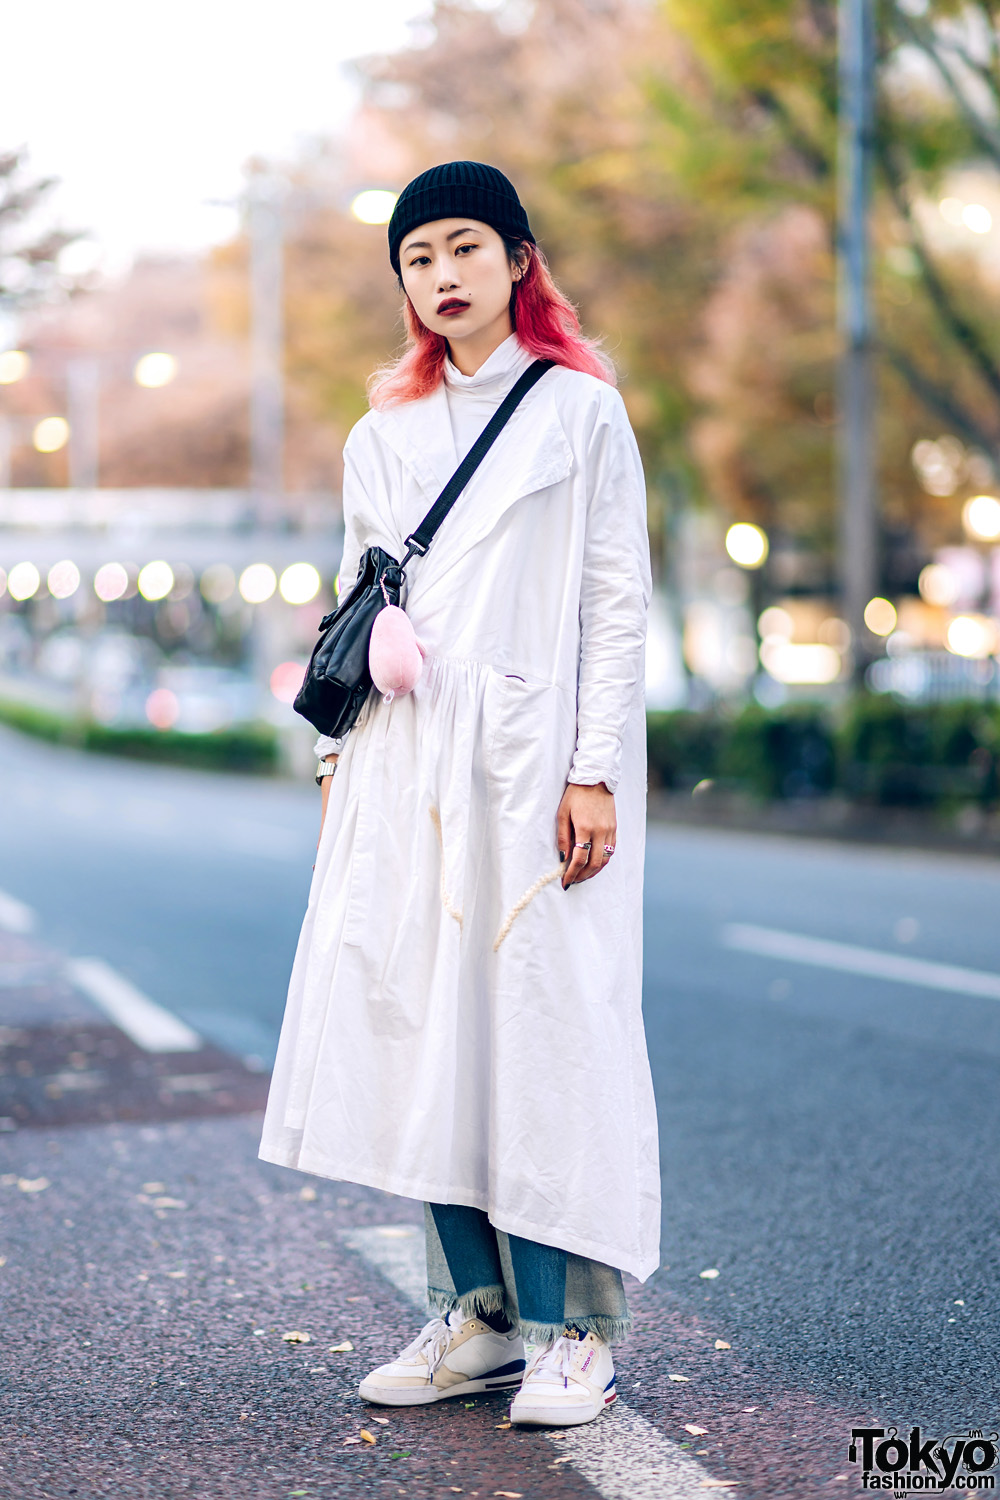 Minimalist Street Style in Harajuku w/ White Coat, MISBHV Patchwork Jeans, Neighborhood & Reebok Sneakers